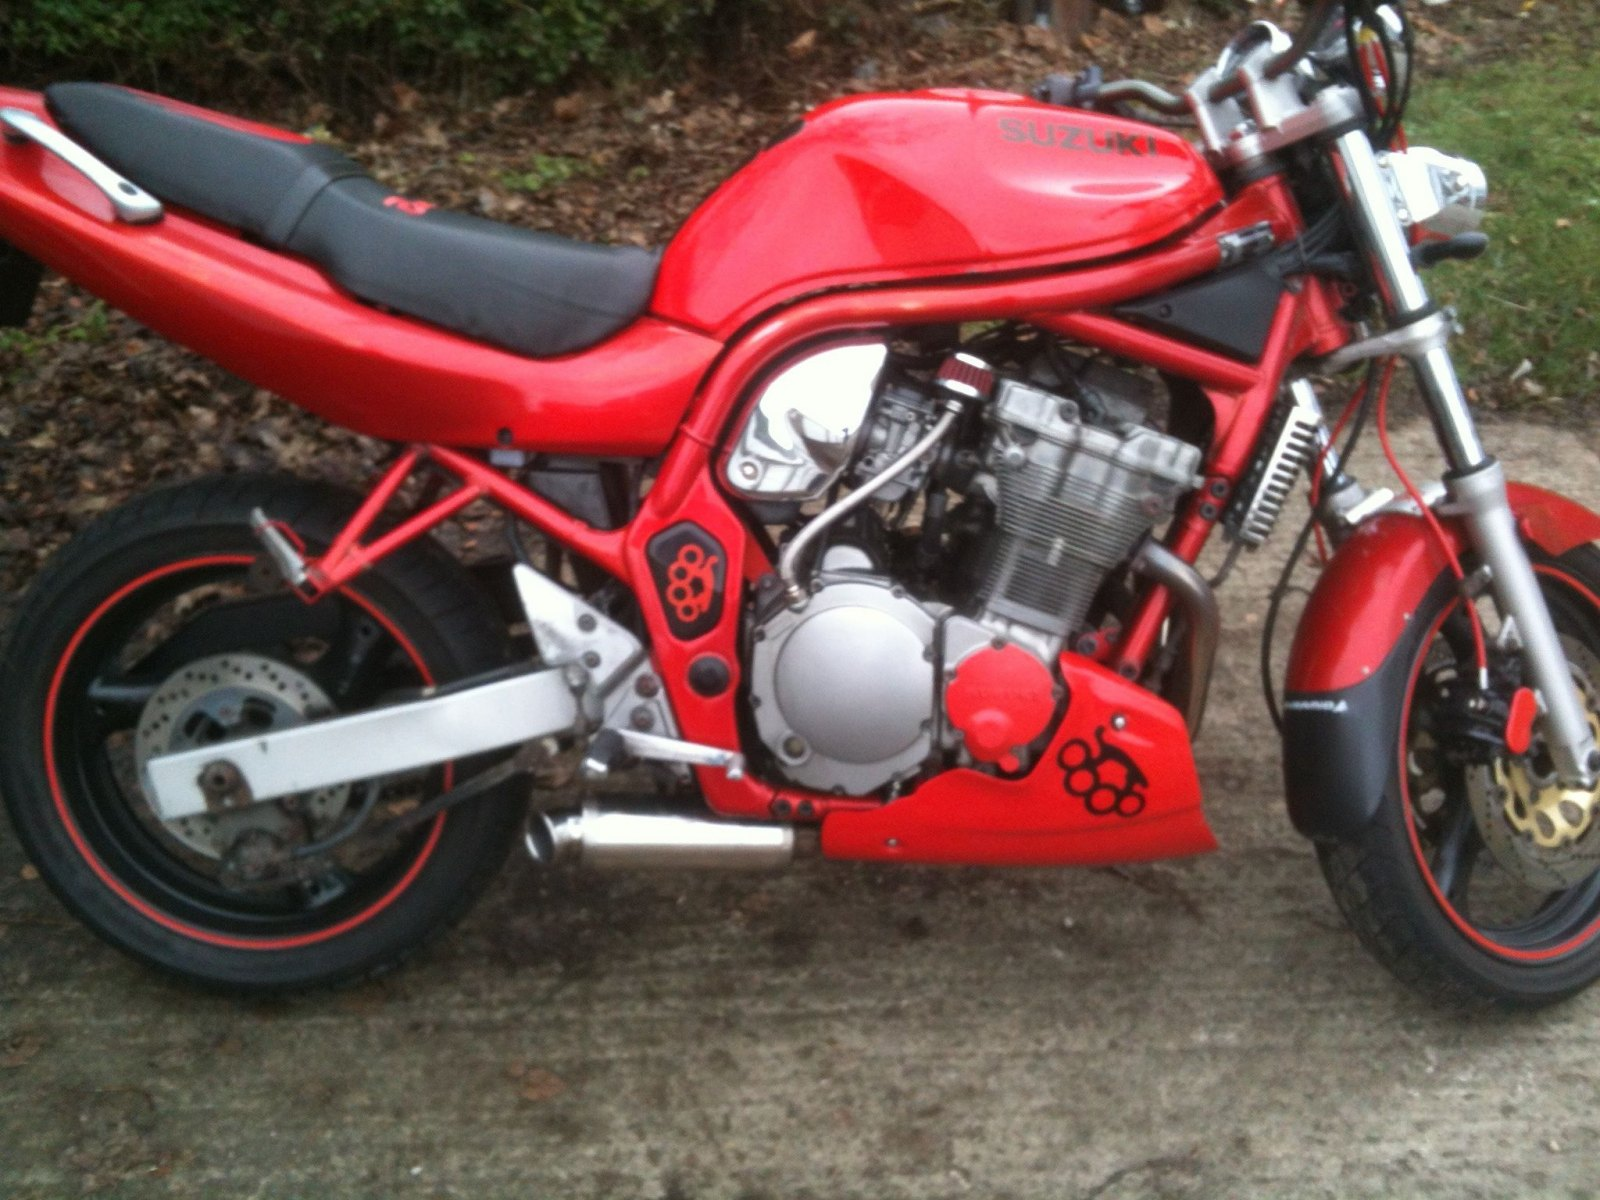 """Suzuki GSF 600 Bandit<p>A16 Stubby Stainless Exhaust with Traditional Spout fitted onto the Headers - Straight out of the Bellypan</p><br/><a href=""""https://a16roadnracesupplies.co.uk/product/a16-suzuki-exhausts/"""">Buy now!</a>"""